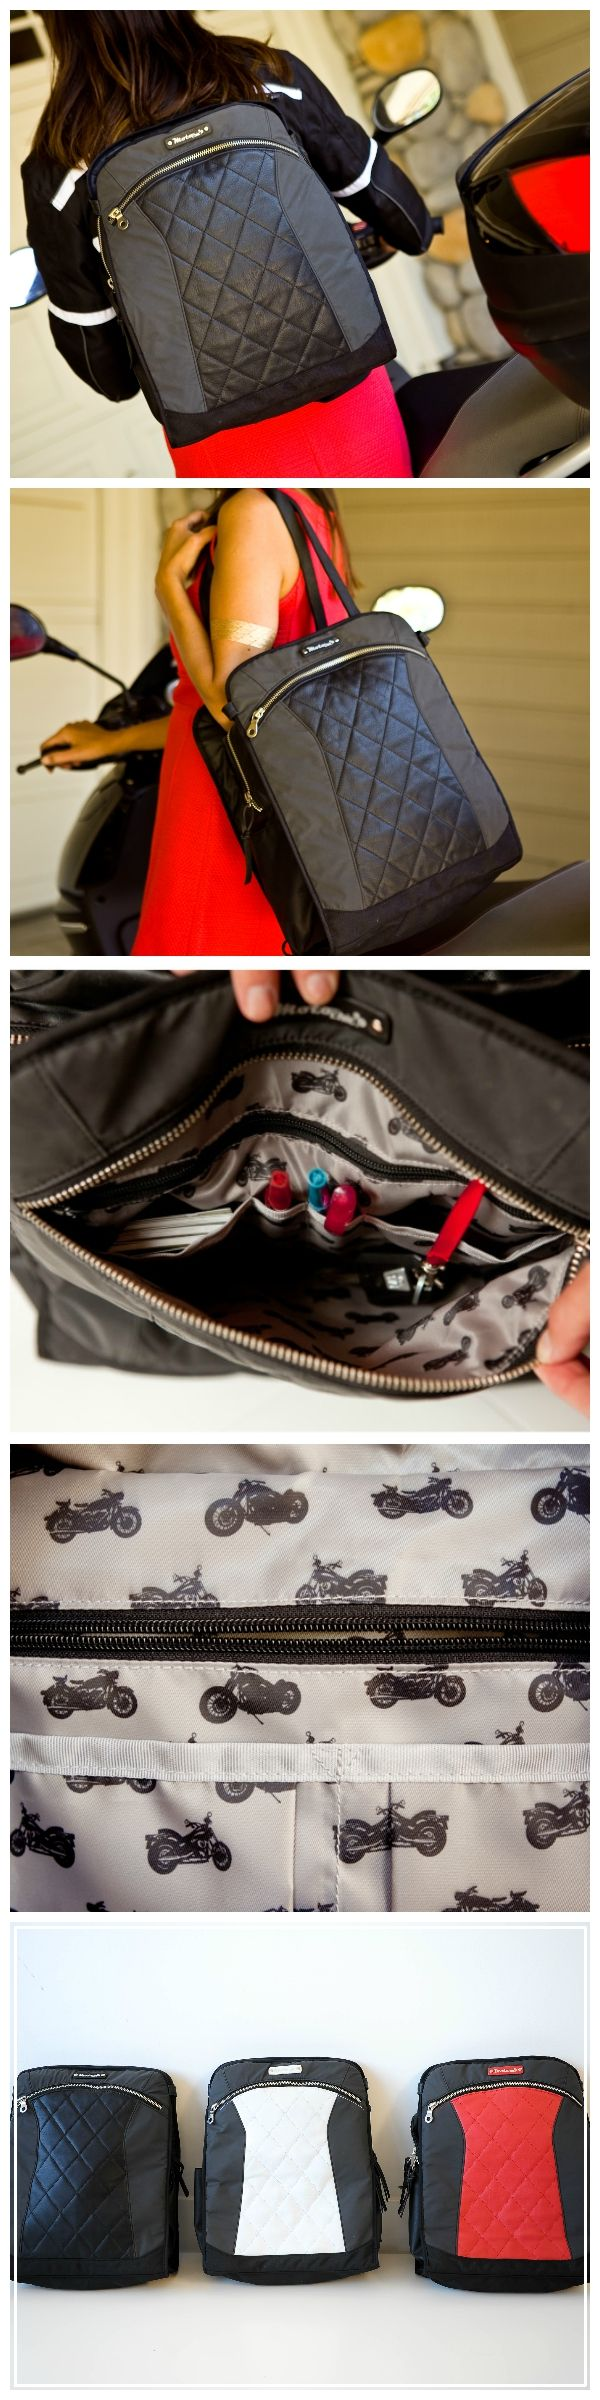 "A Stylish Alternative to a Motorcycle Bag Specifically For Women  @gearchic  reviews the Lauren convertible backpack + tote:   ""A lot of little compartments and organizing little spaces inside the bag, which I think a lot of us can appreciate. Because you know we carry a lot of stuff. We carry pens and keys and books and wallets and makeup, and all kinds of things we want to bring to work for that day so this is a good option if you want to commute."""